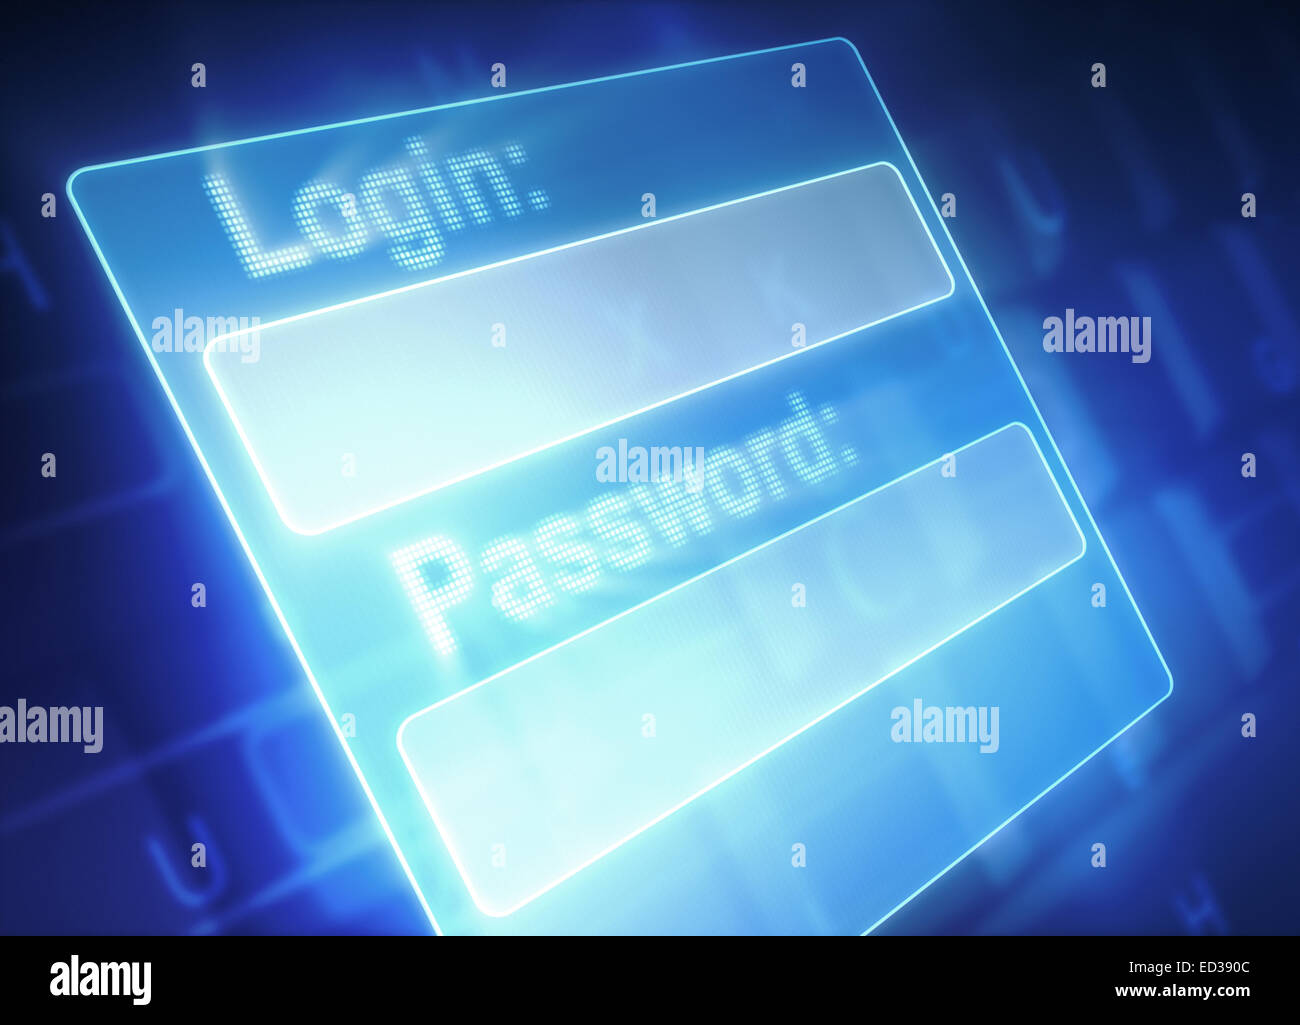 Security system: fields for login and password. - Stock Image